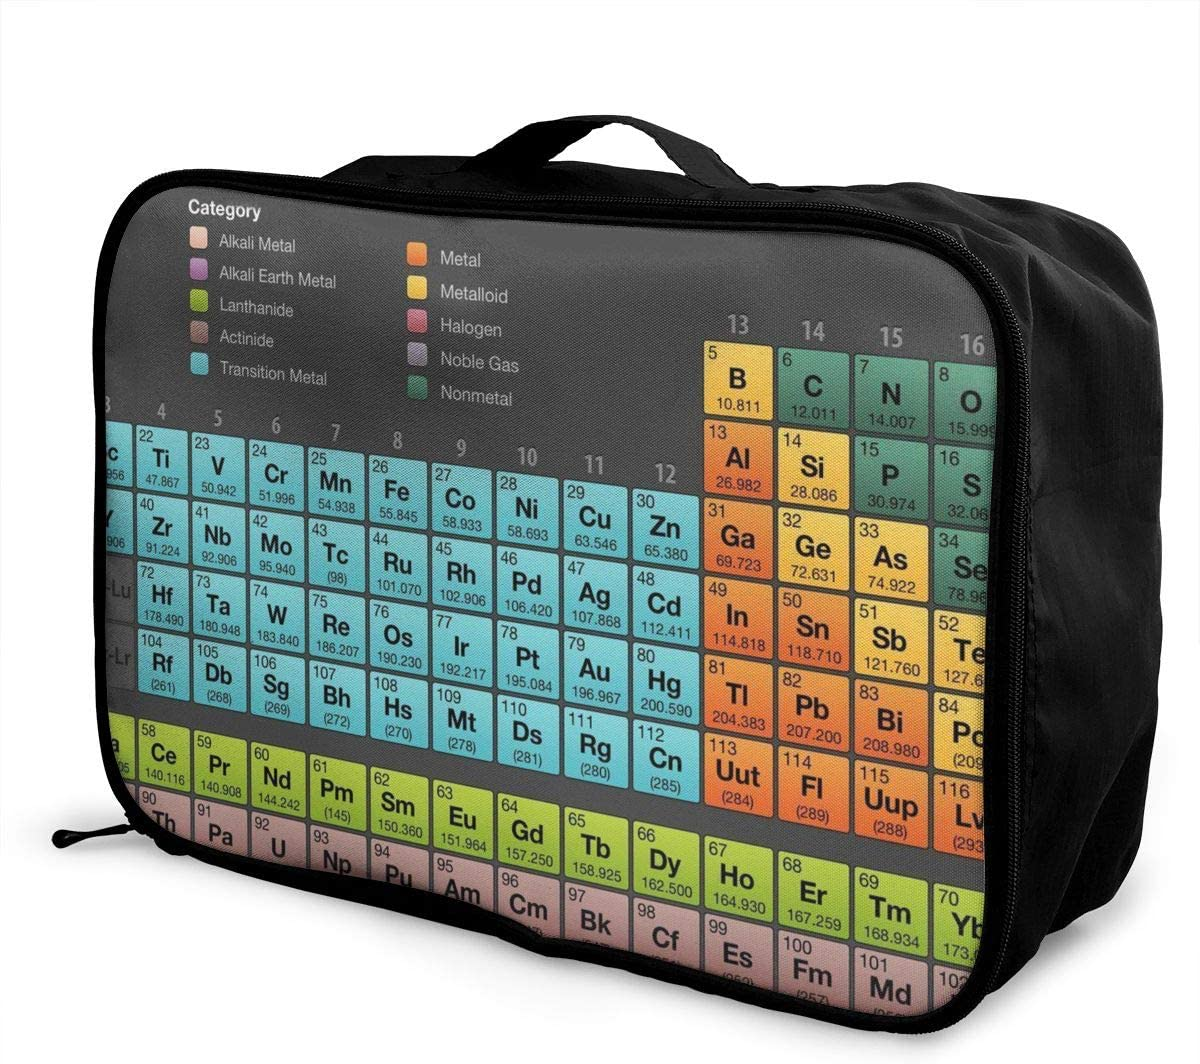 XTYND556 Periodic Table of Ele Ments Fitness Bag for Travel Enthusiasts Fitness